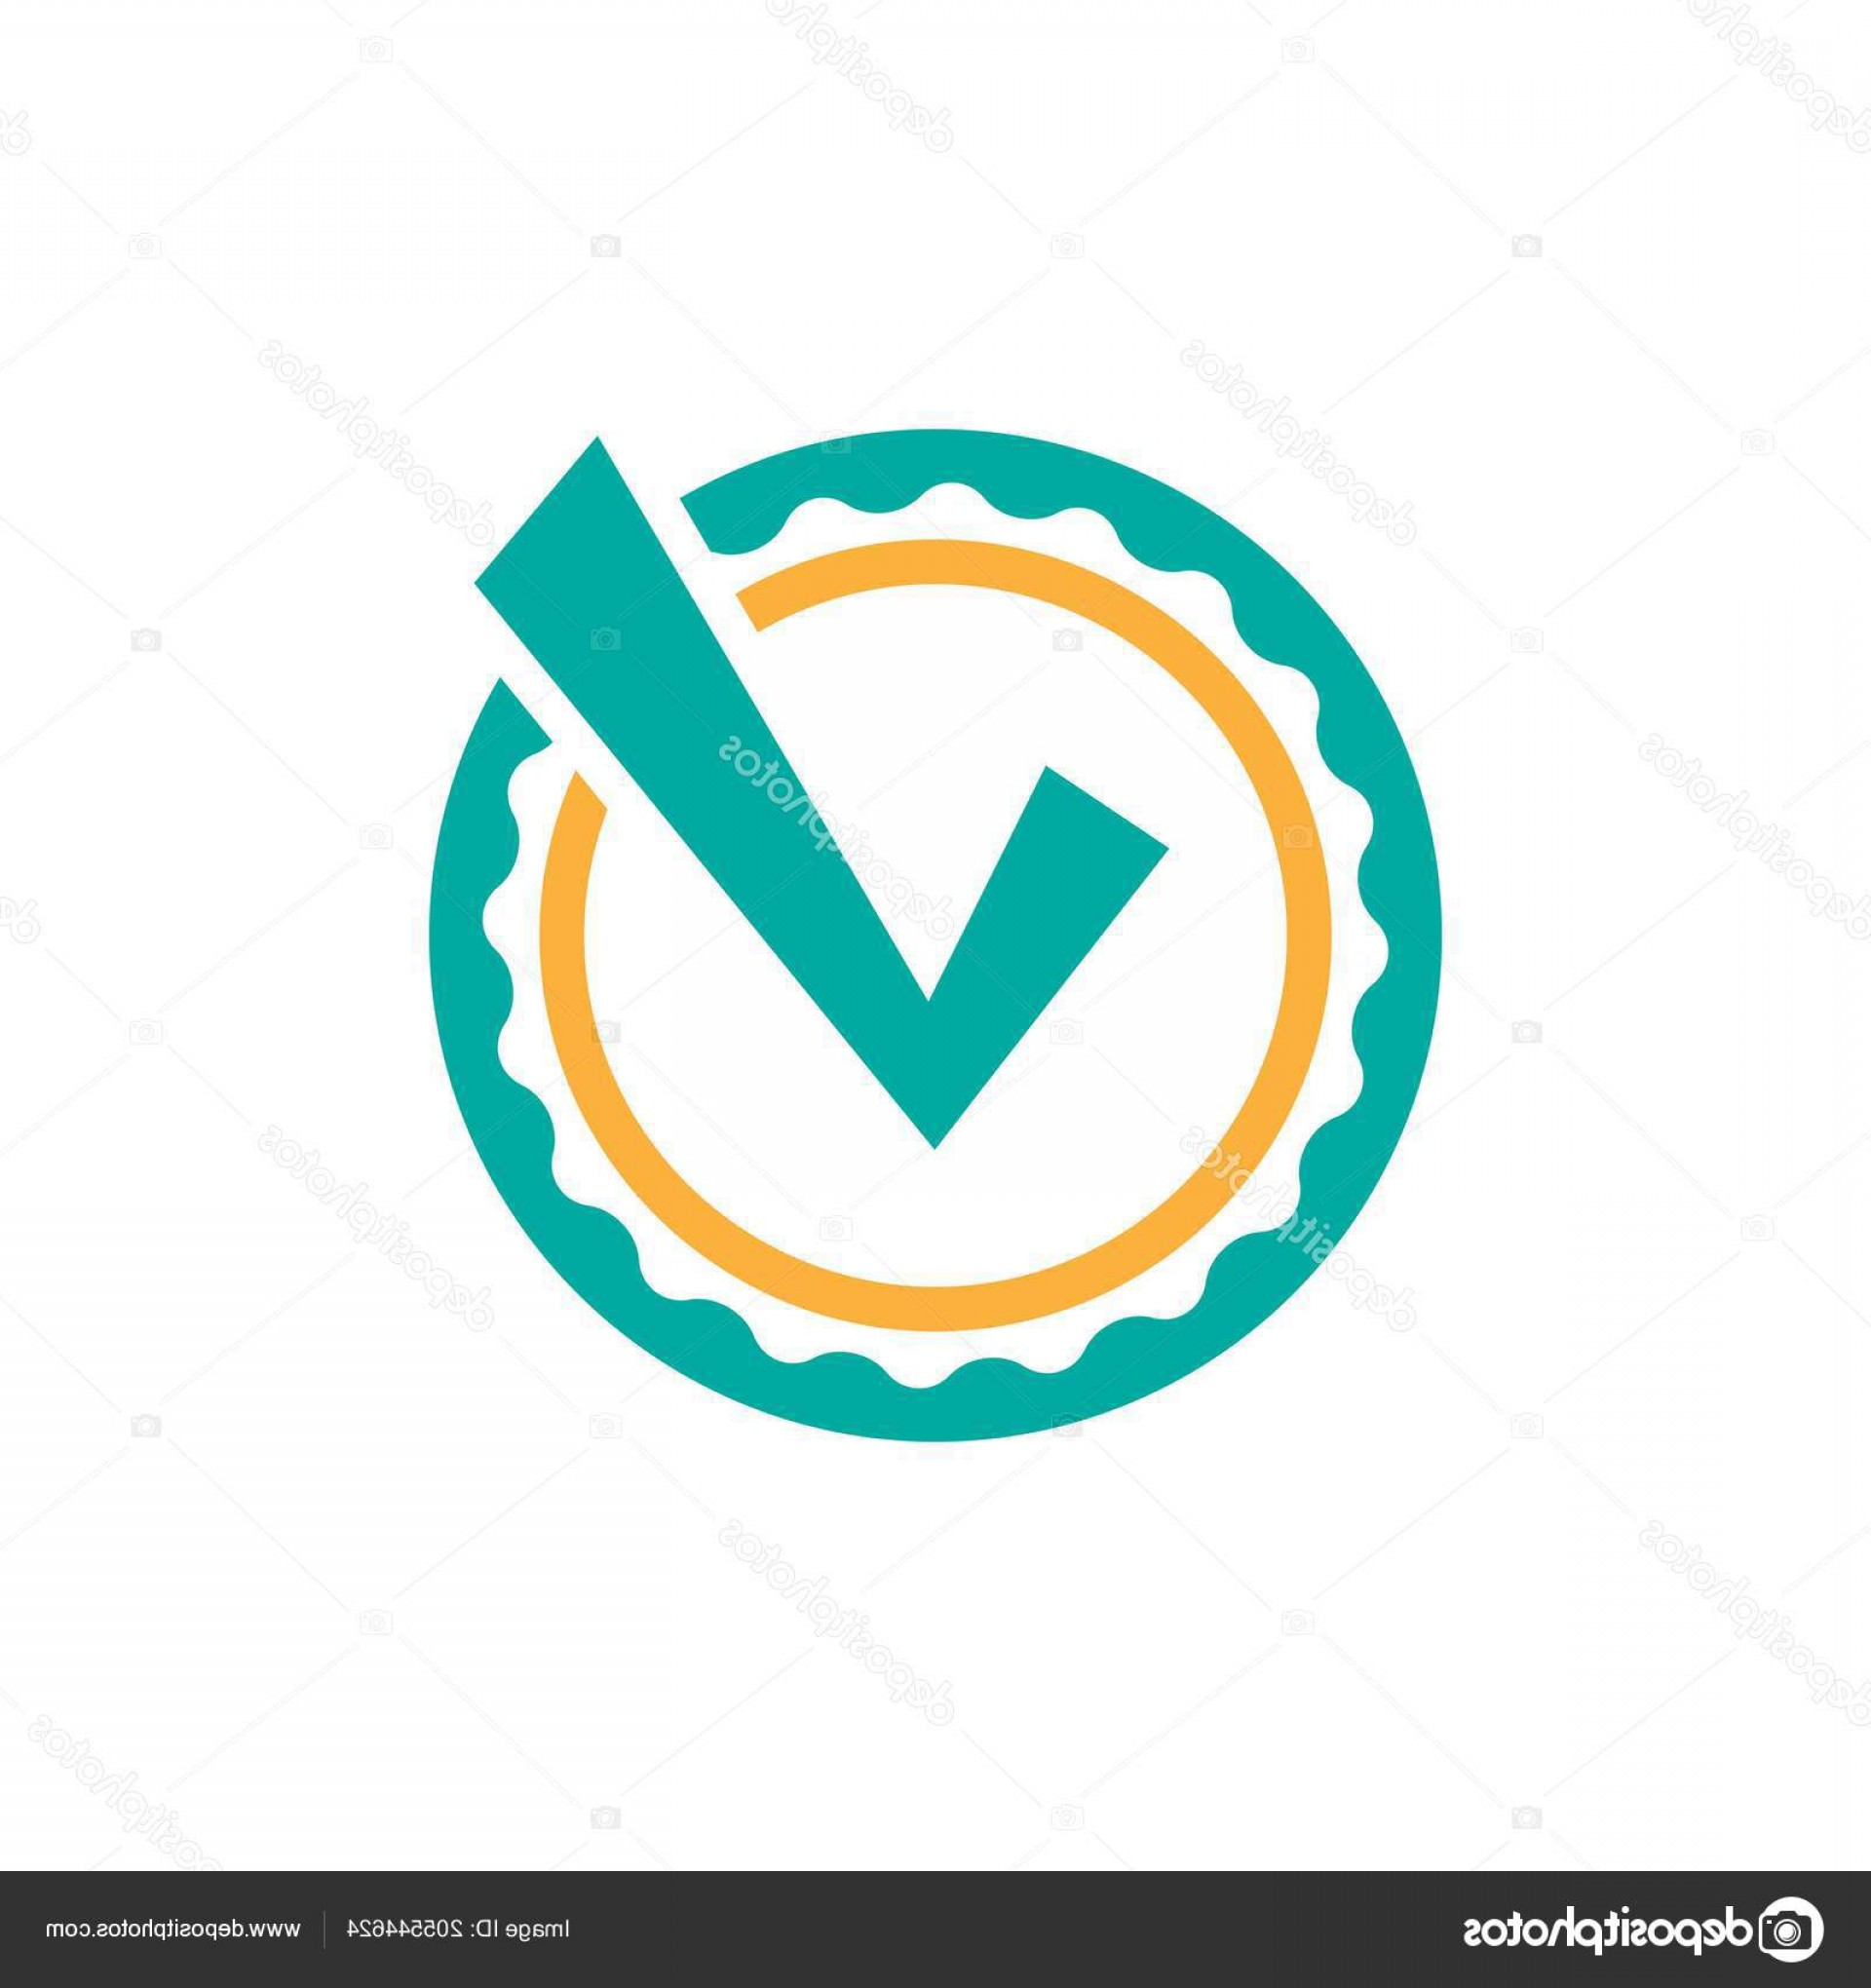 Blue And Orange Circle Vector: Stock Illustration Valid Seal Icon Blue Orange